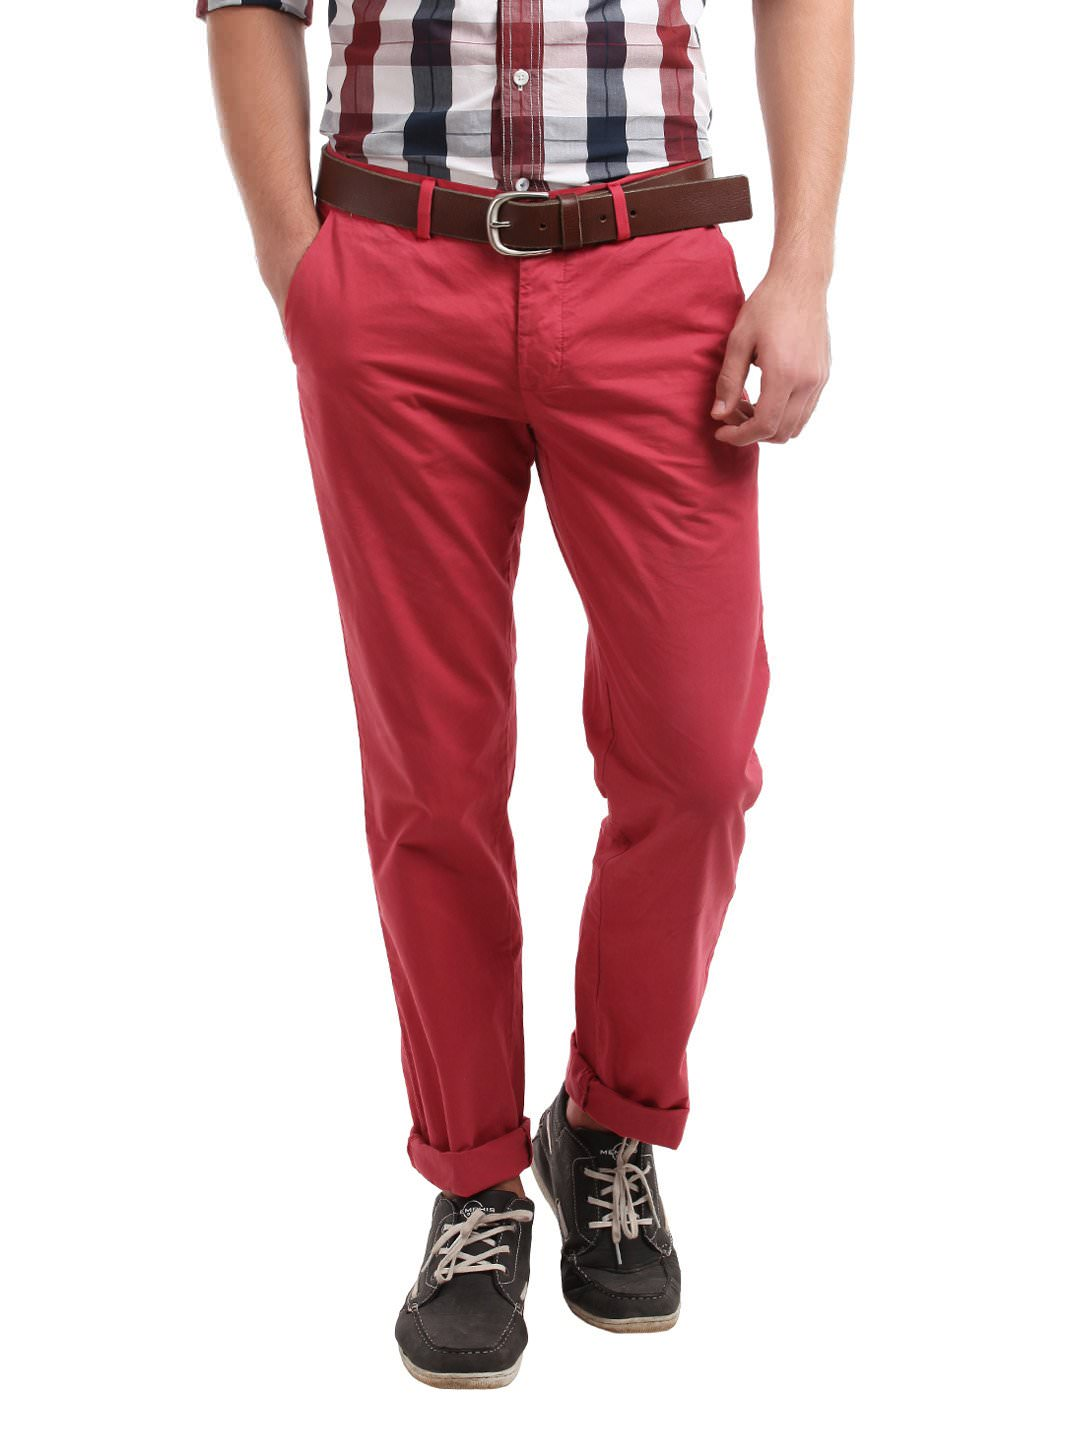 MANtoMEASURE: What to Wear with Red Chinos